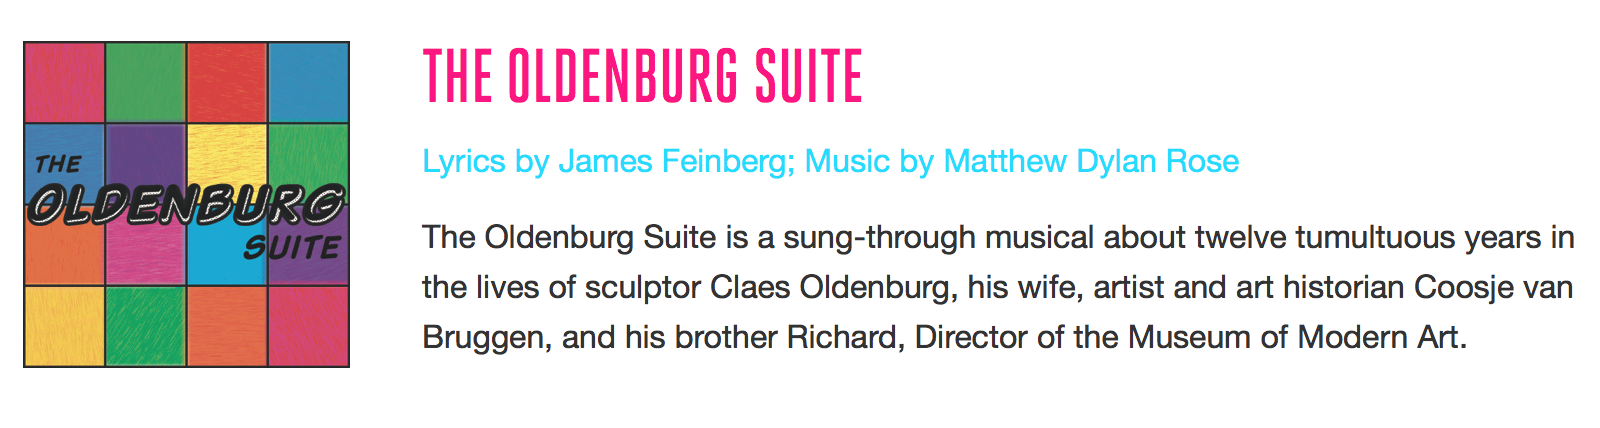 july 27 - july 28, 2019 - Junior is thrilled to be playing John Hightower/Javier Tusell in The Oldenburg Suite, a live concert, as part of the New York Musical Festival.